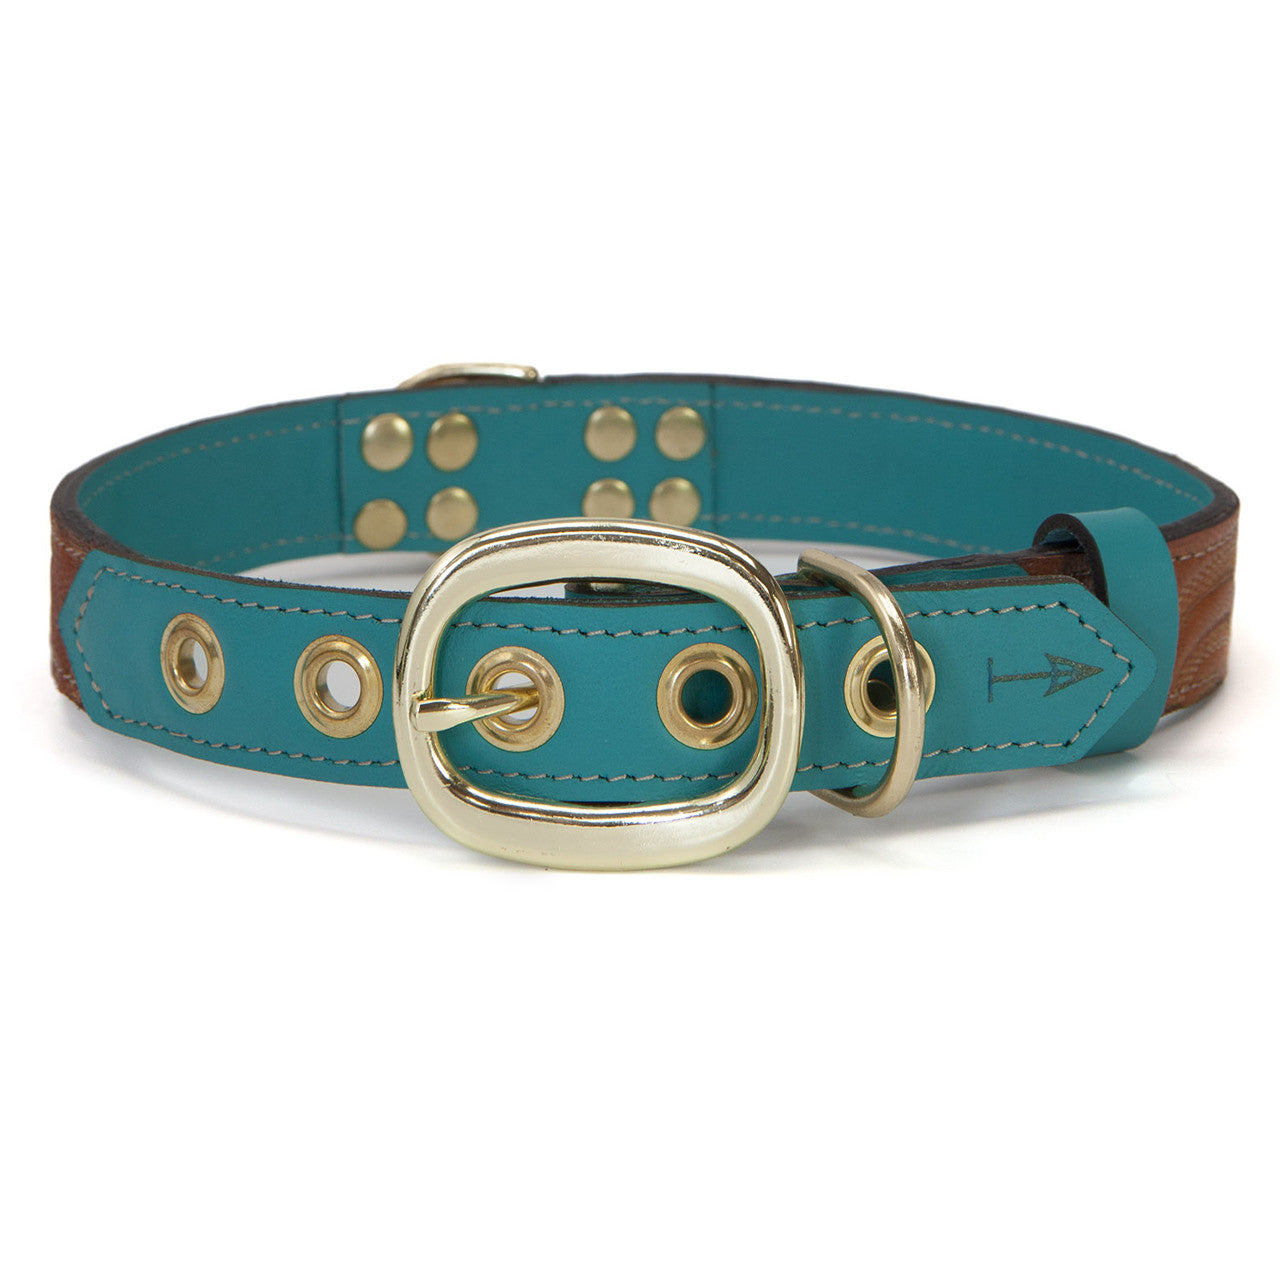 Turquoise Dog Collar with Brown Leather + Tan Stitching (back view)